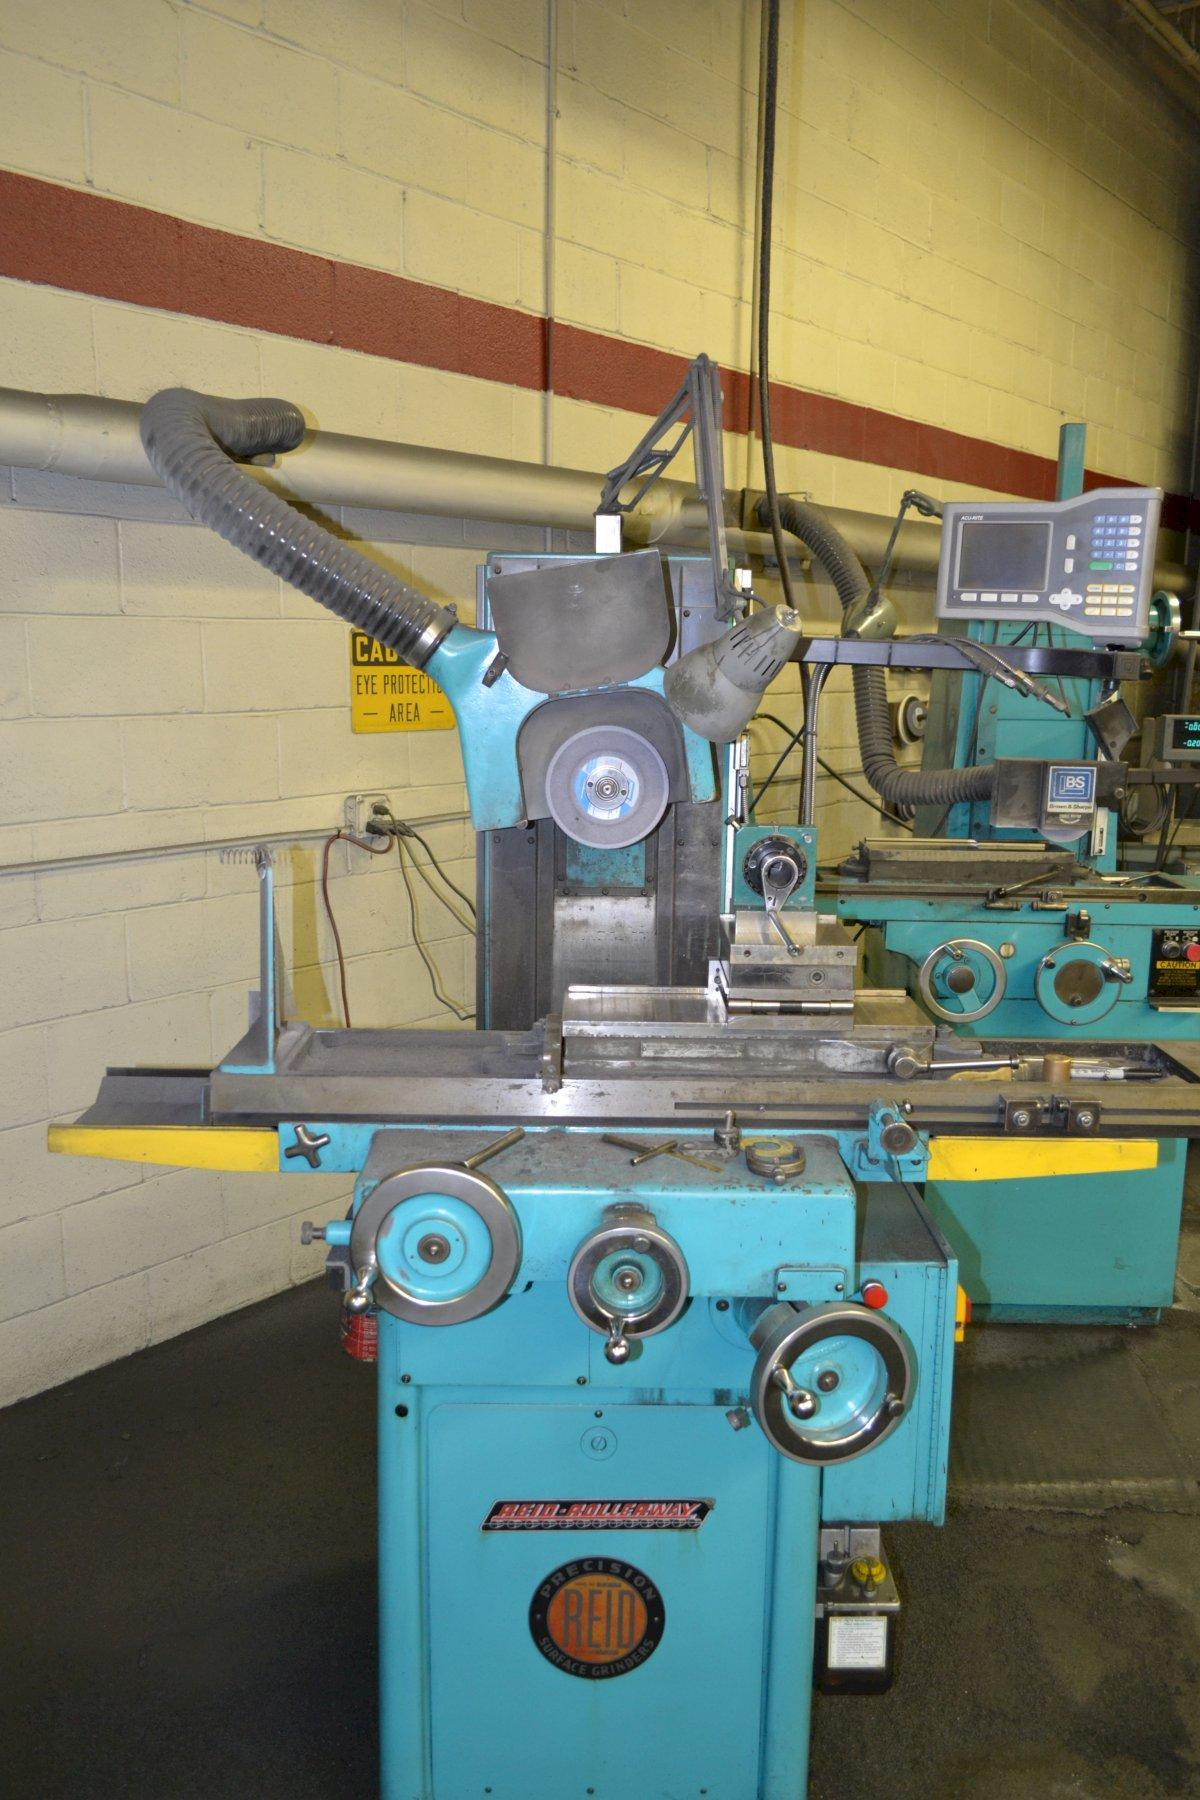 Reid Model 618-HR Surface Grinder